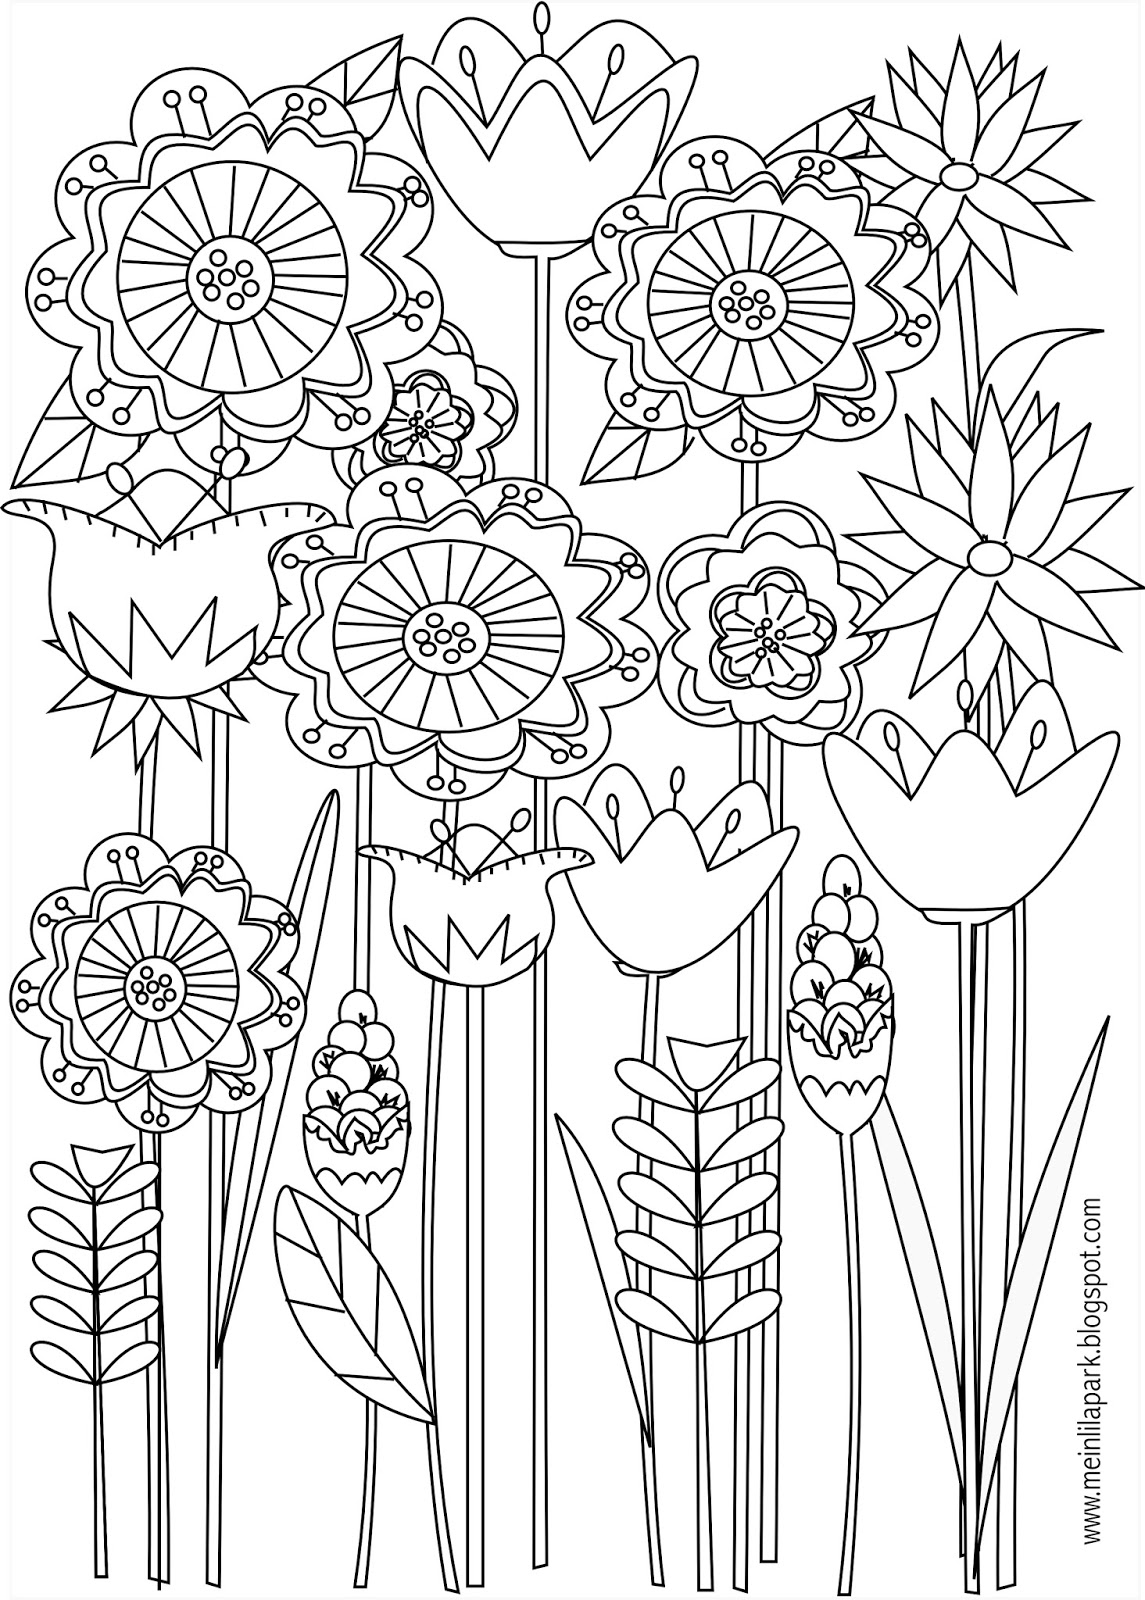 pictures to colour in of flowers tulip coloring pages to download and print for free flowers in pictures of to colour